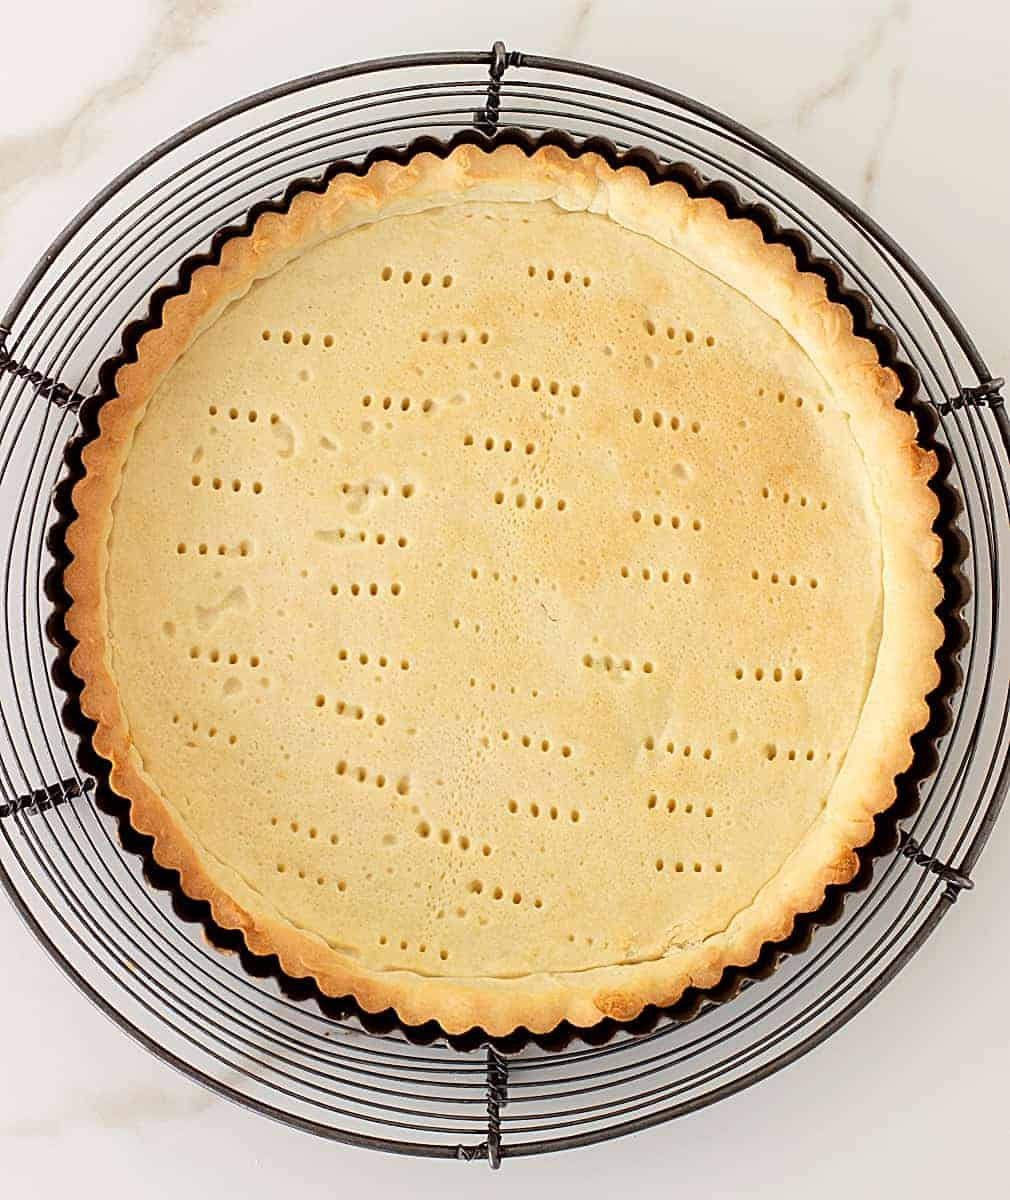 Baked shortcrust pastry on metal tart pan on wire rack, white marble surface